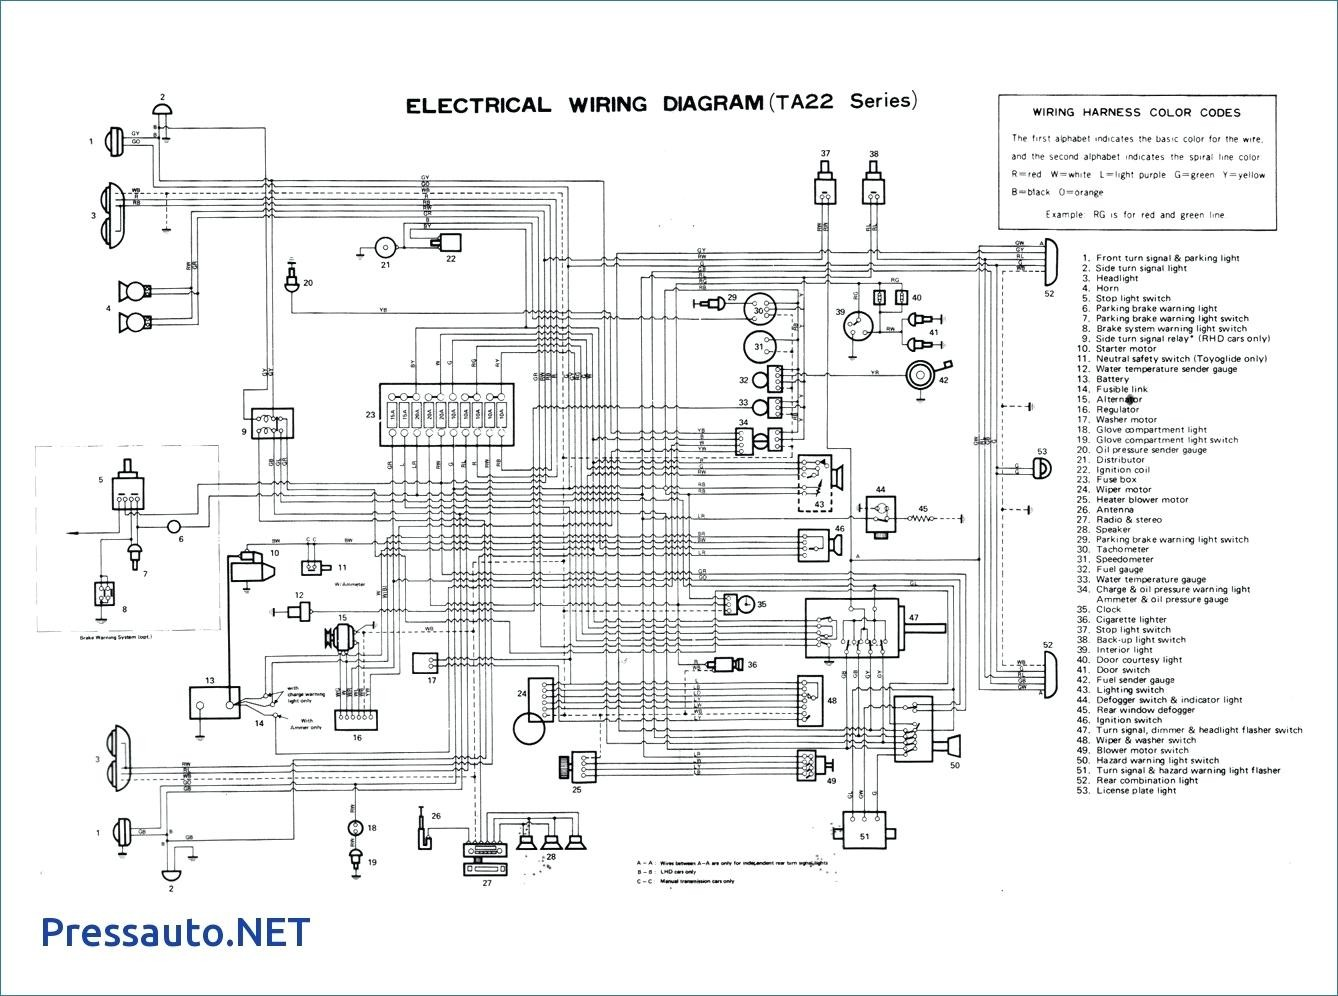 46 John Deere B Wiring Diagram Basic Guide Wiring Diagram \u2022 John Deere  Ignition Wiring Diagram John Deere 5200 Tractor Wiring Diagram